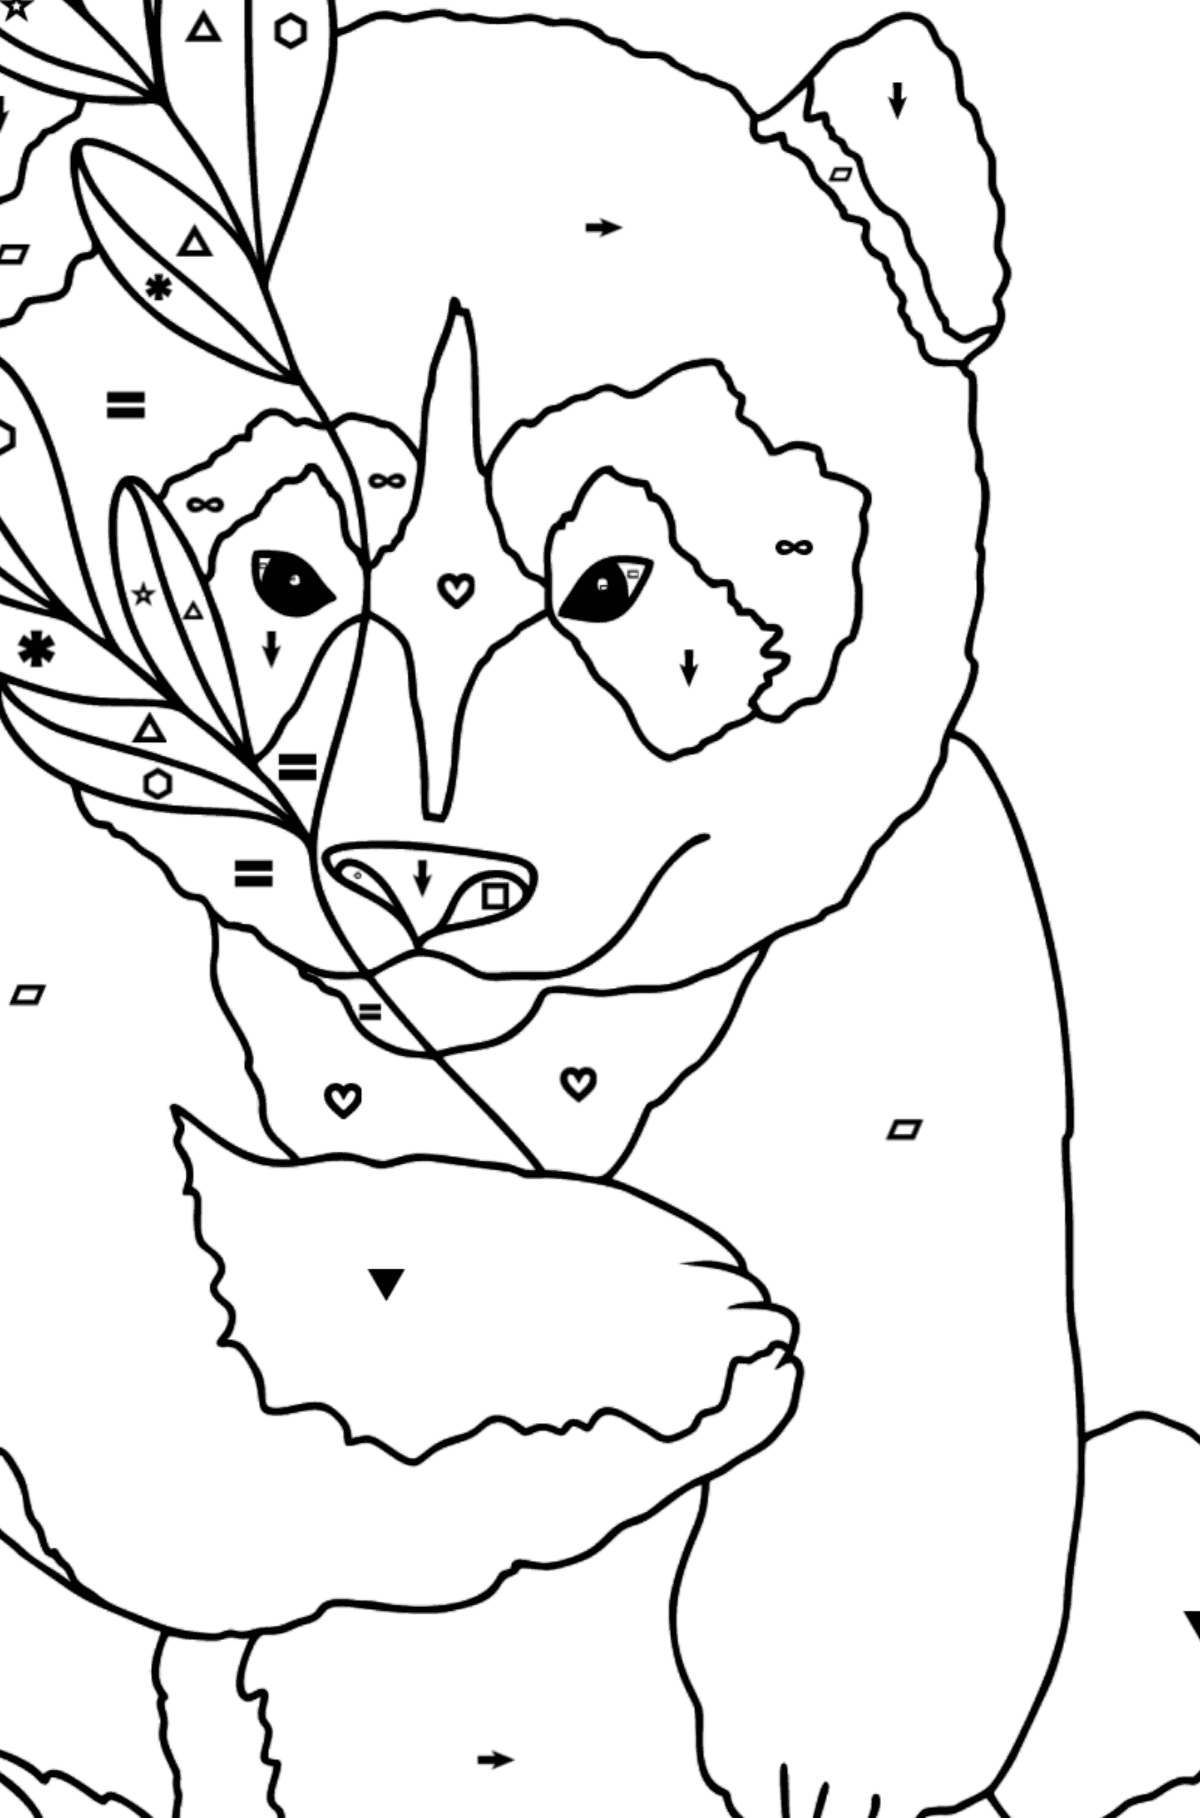 Coloring Page - A Panda Loves Bamboo Leaves - Coloring by Symbols and Geometric Shapes for Kids